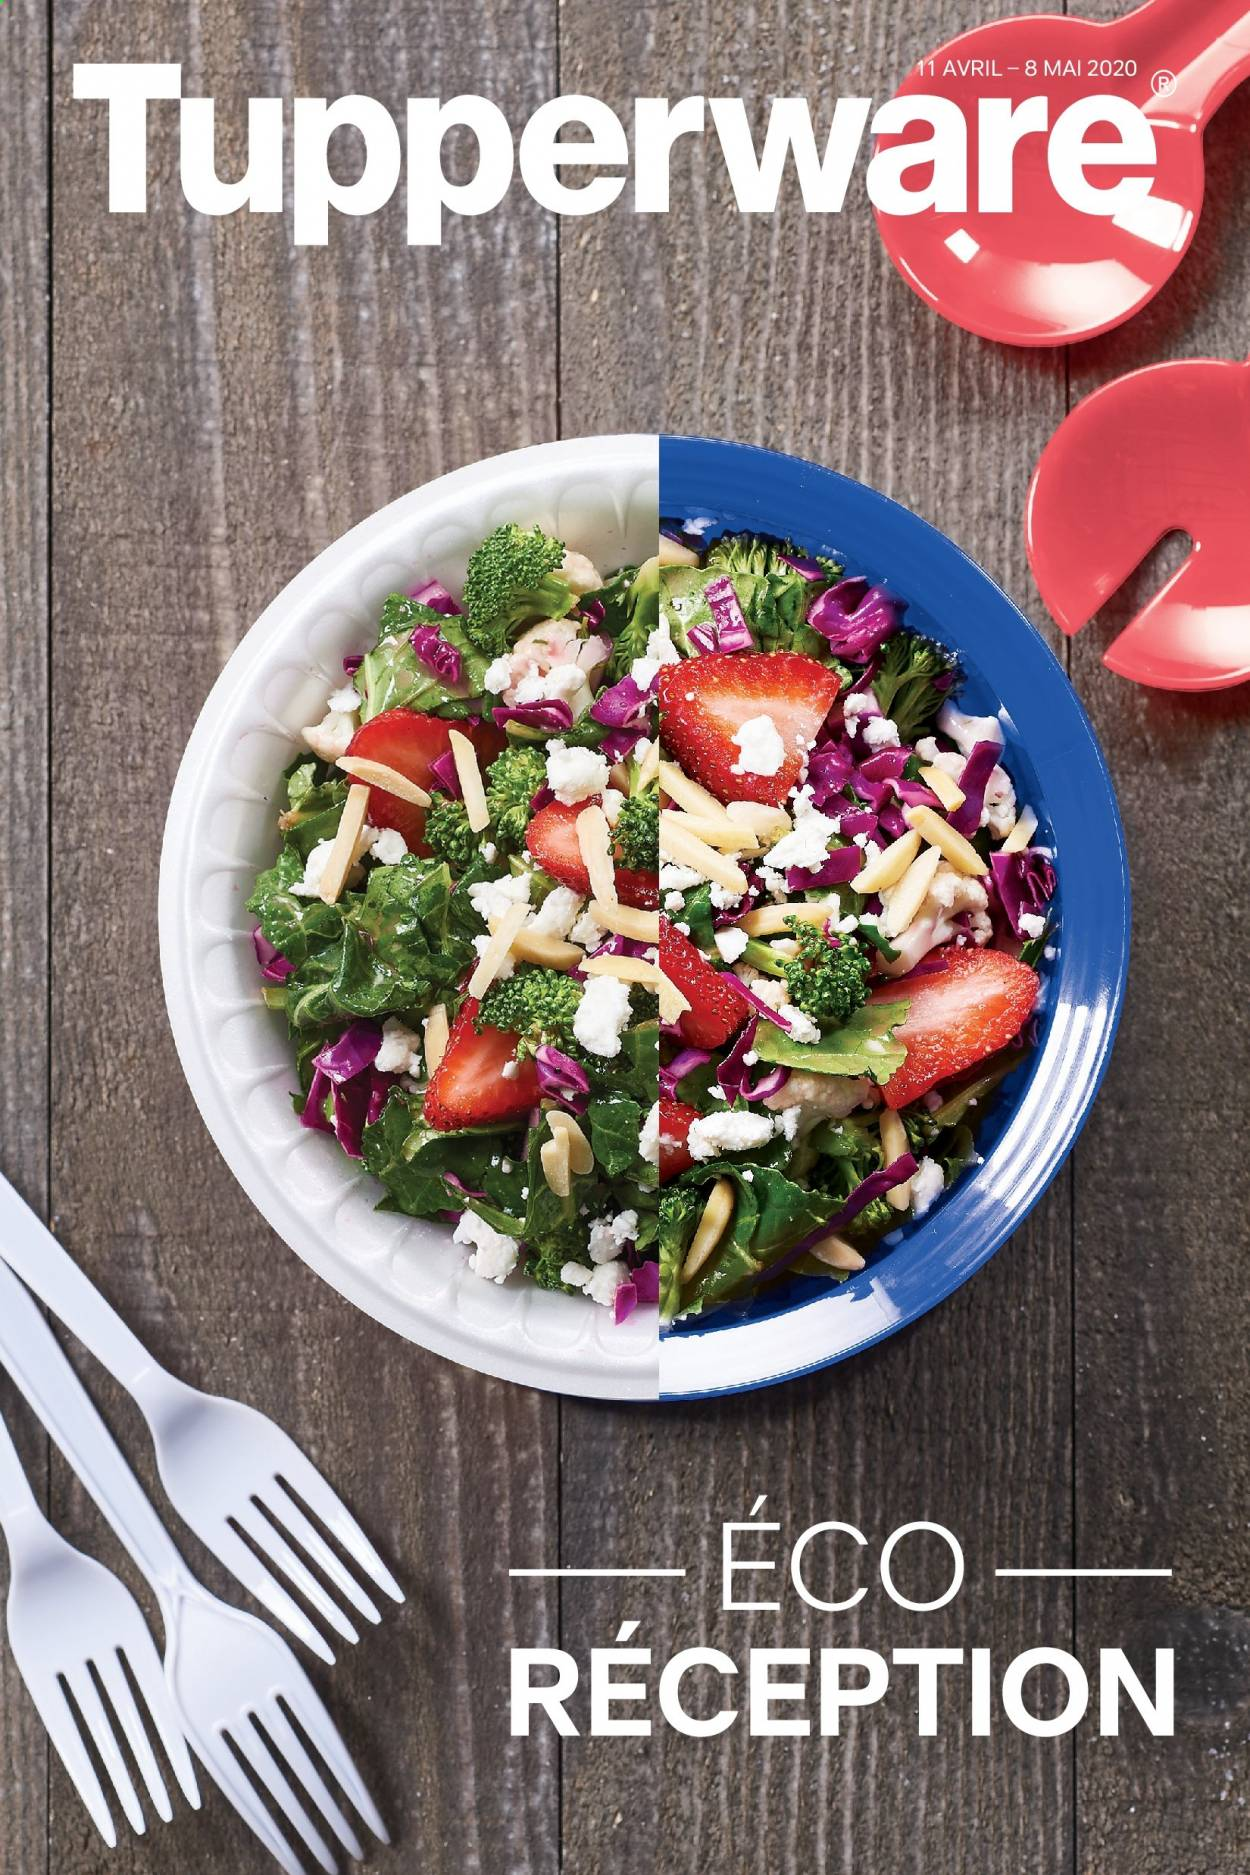 Tupperware Flyer  - April 11, 2020 - May 08, 2020. Page 1.